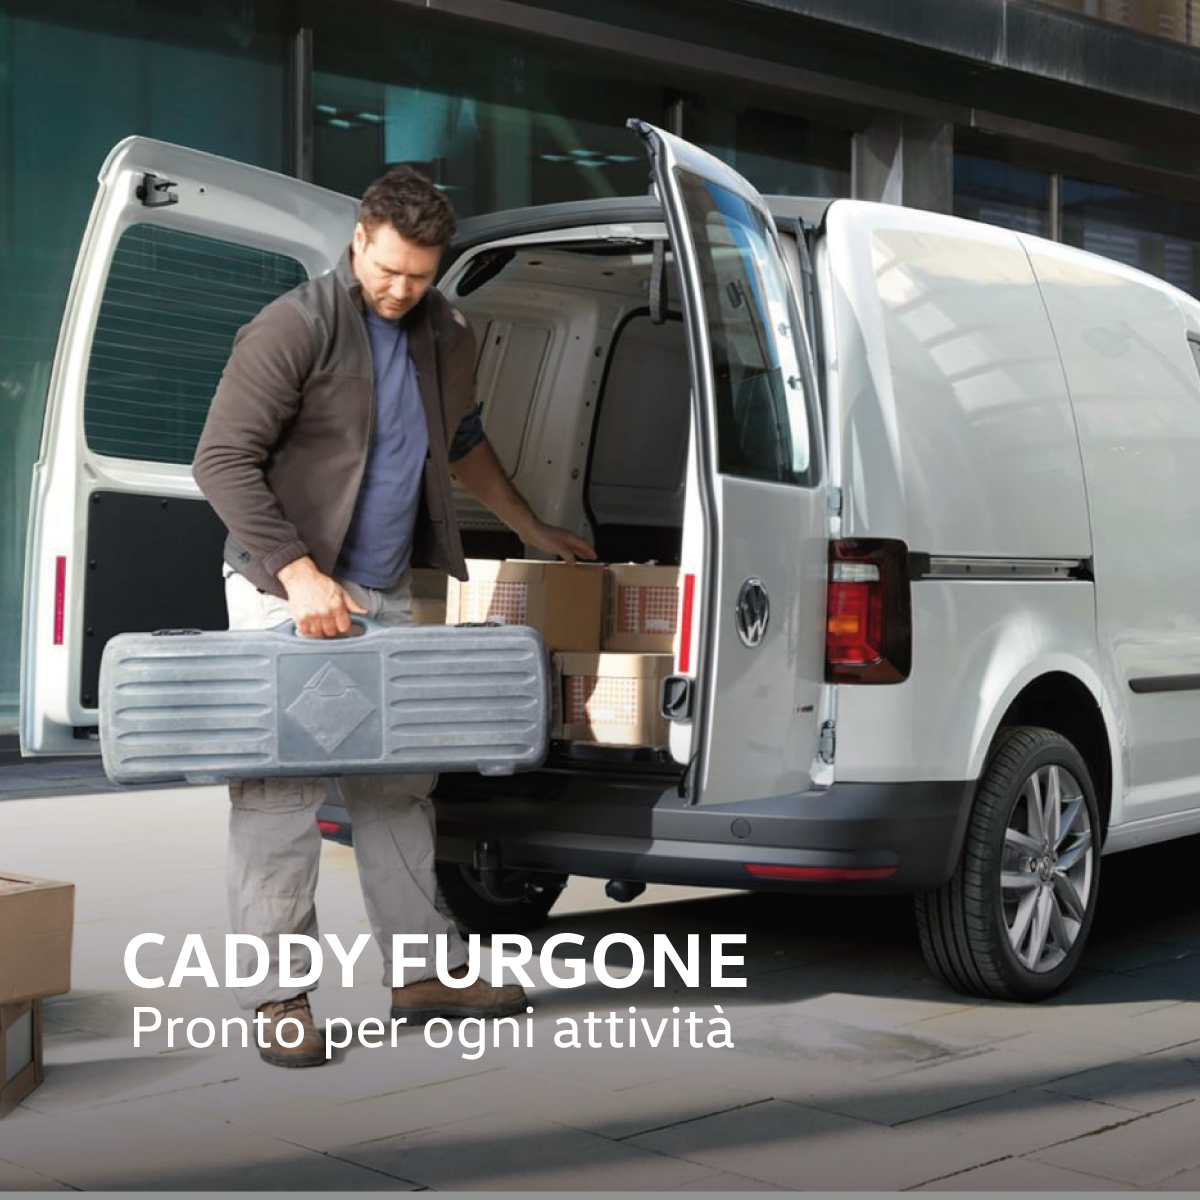 Caddy Furgone Carpoint (2)